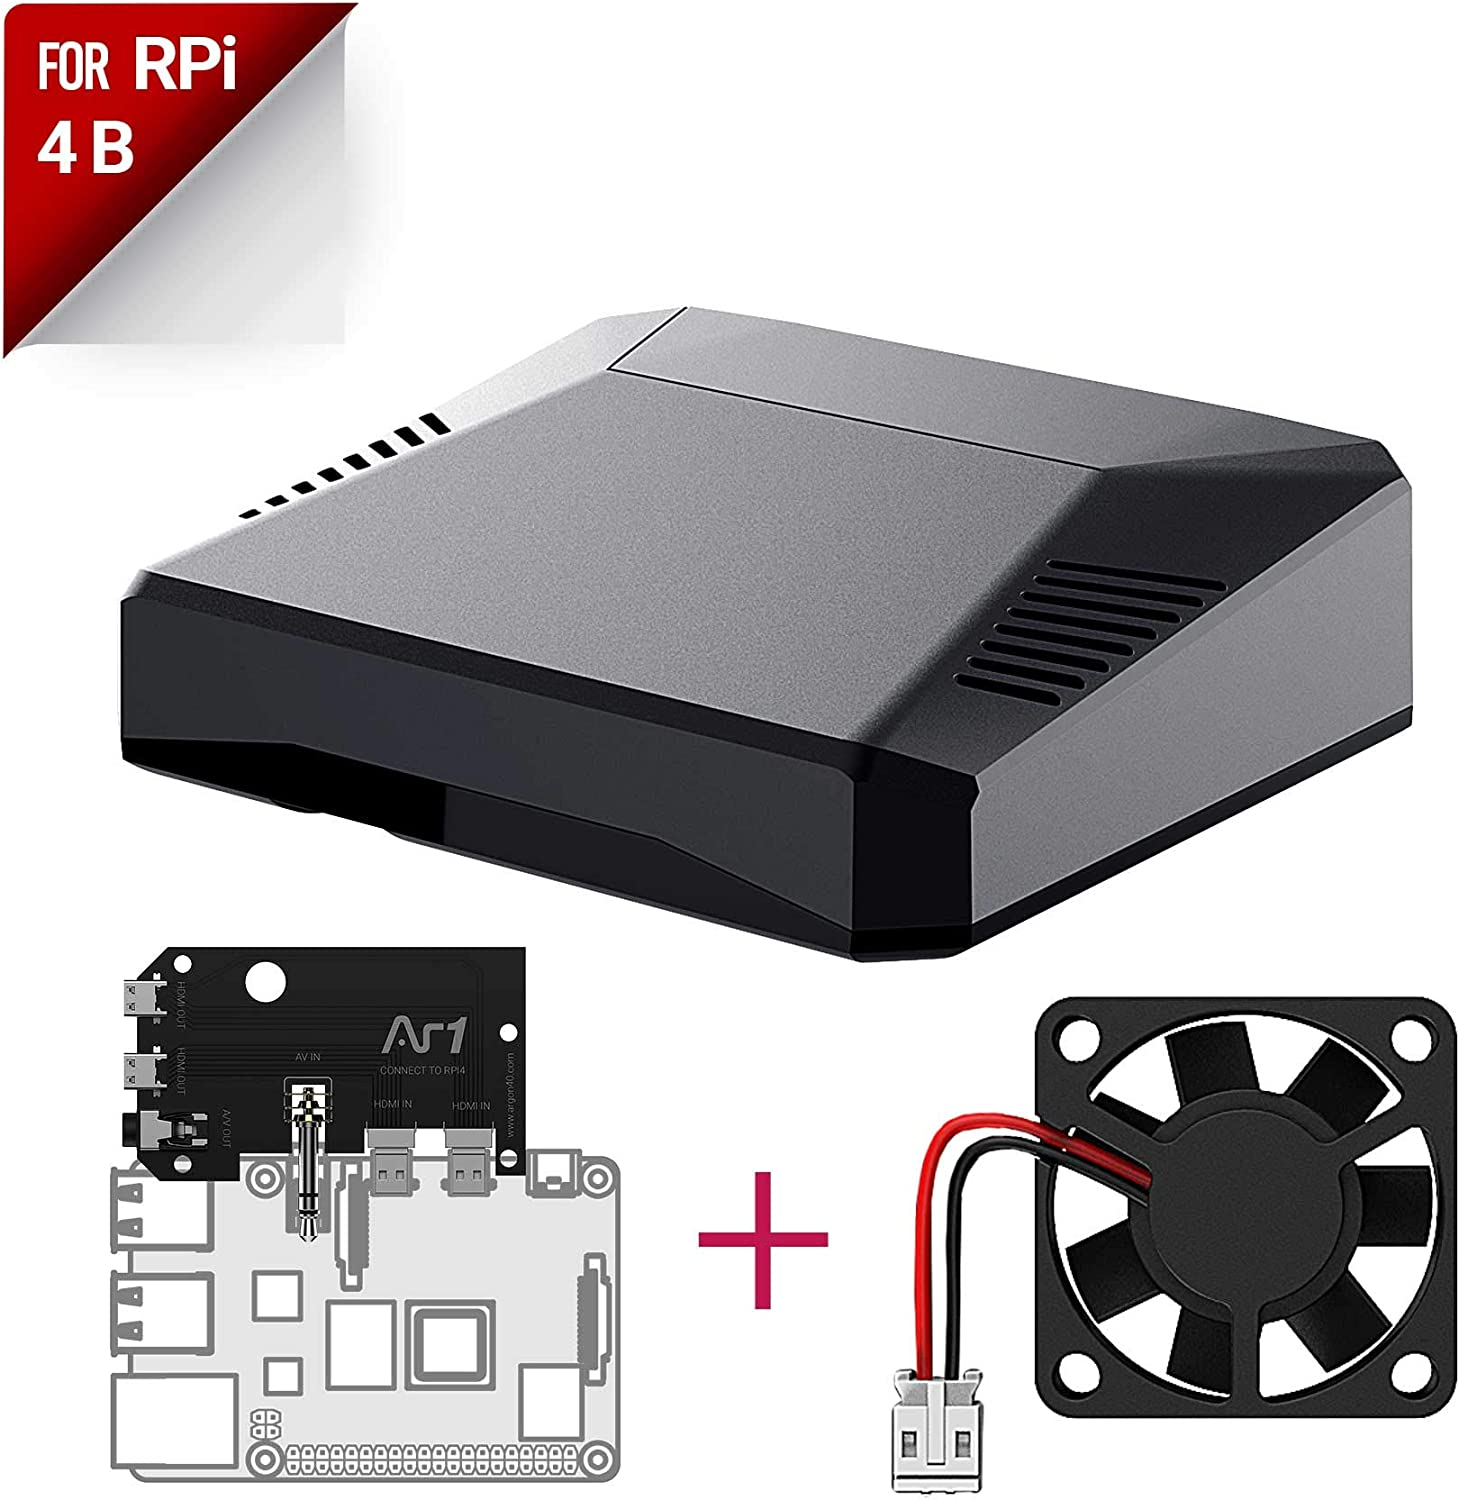 Argon ONE Raspberry Pi 4 Case with Cooling Fan | Aluminum Heatsink | Power Button | Supports Retro Gaming, Movies, and Music | for Raspberry Pi 4 Model B